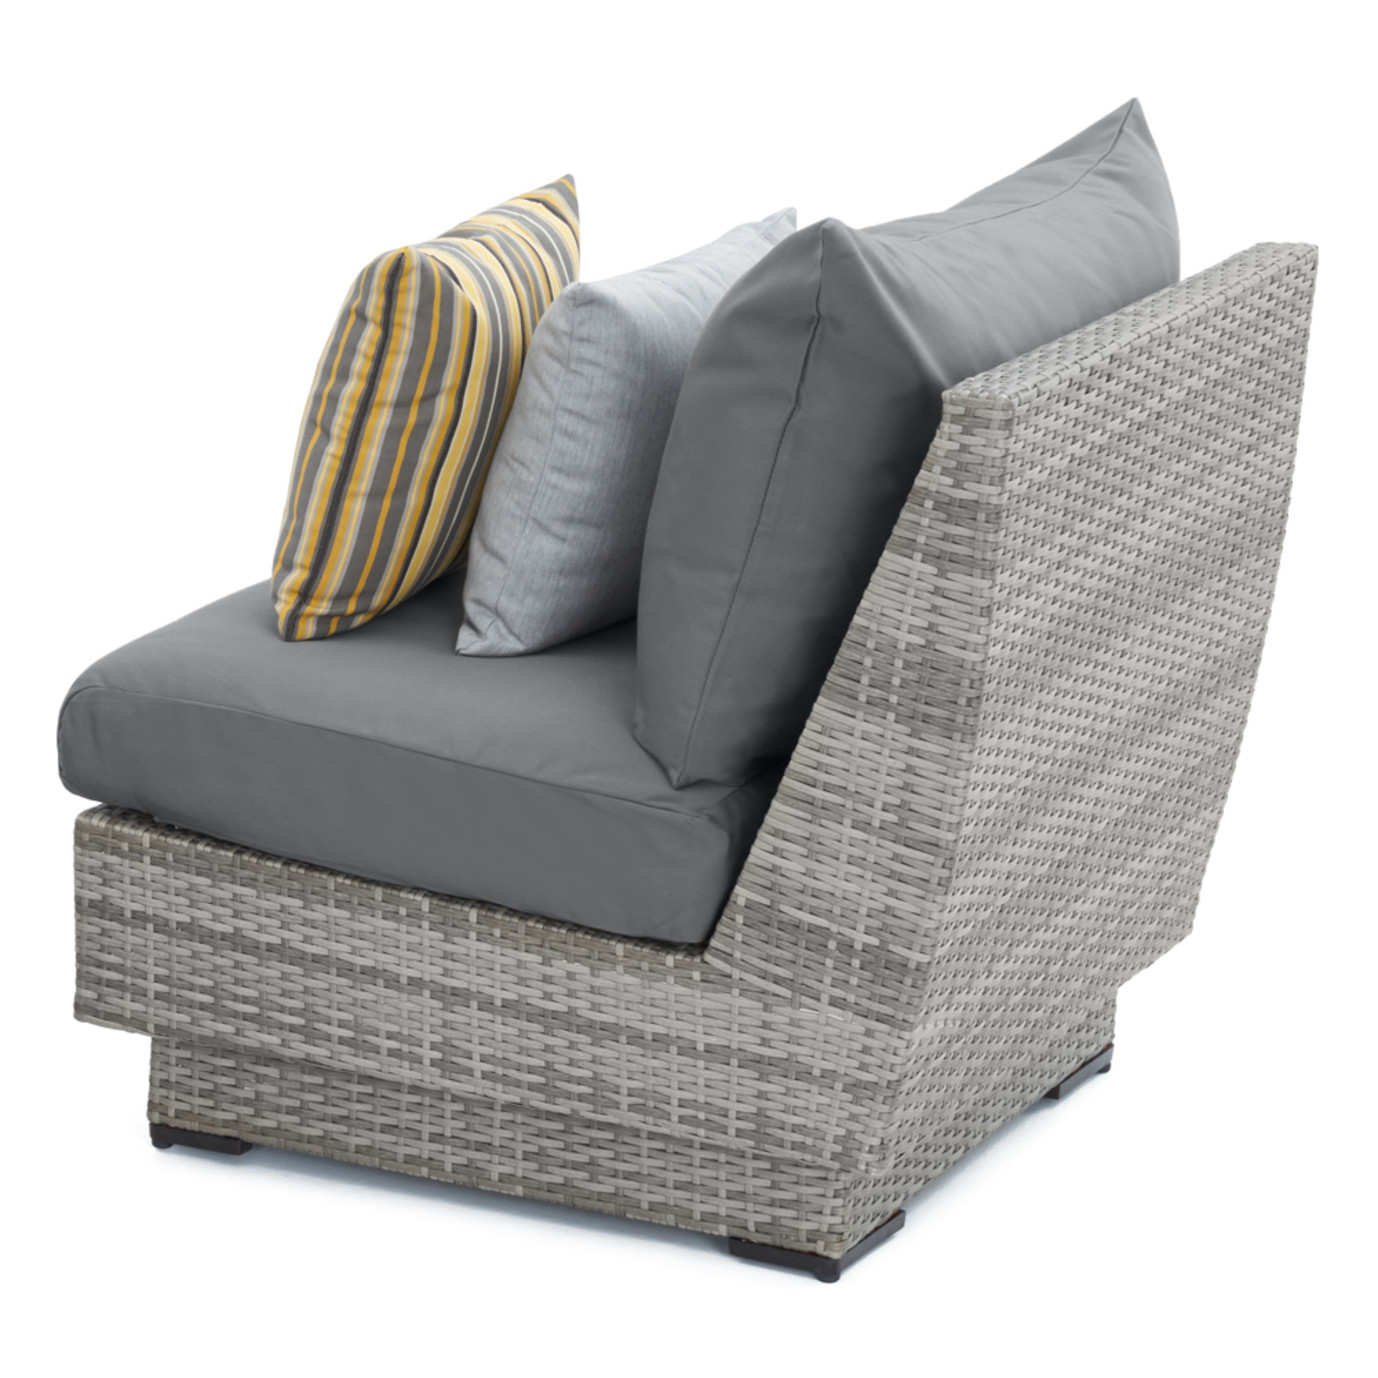 Cannes™ Armless Chairs - Charcoal Gray